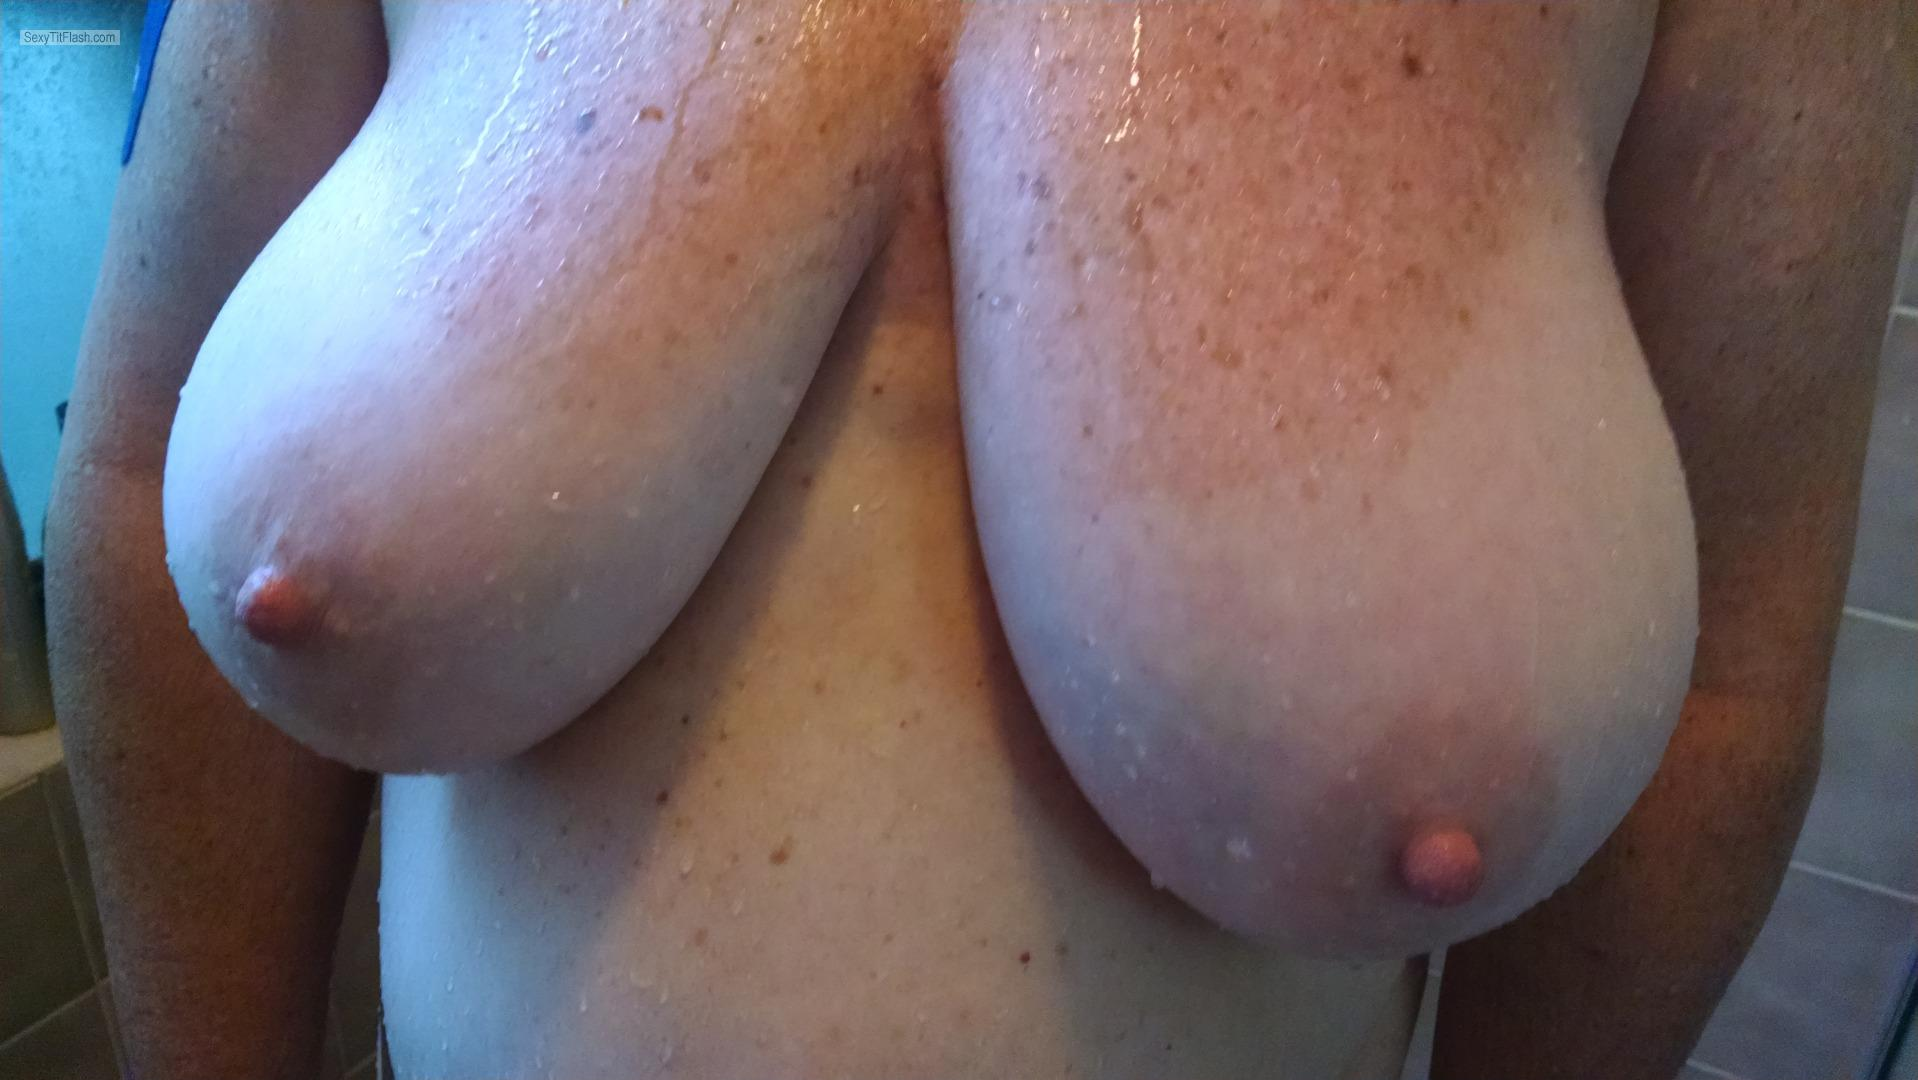 Tit Flash: My Tanlined Very Big Tits - Katherine from United States